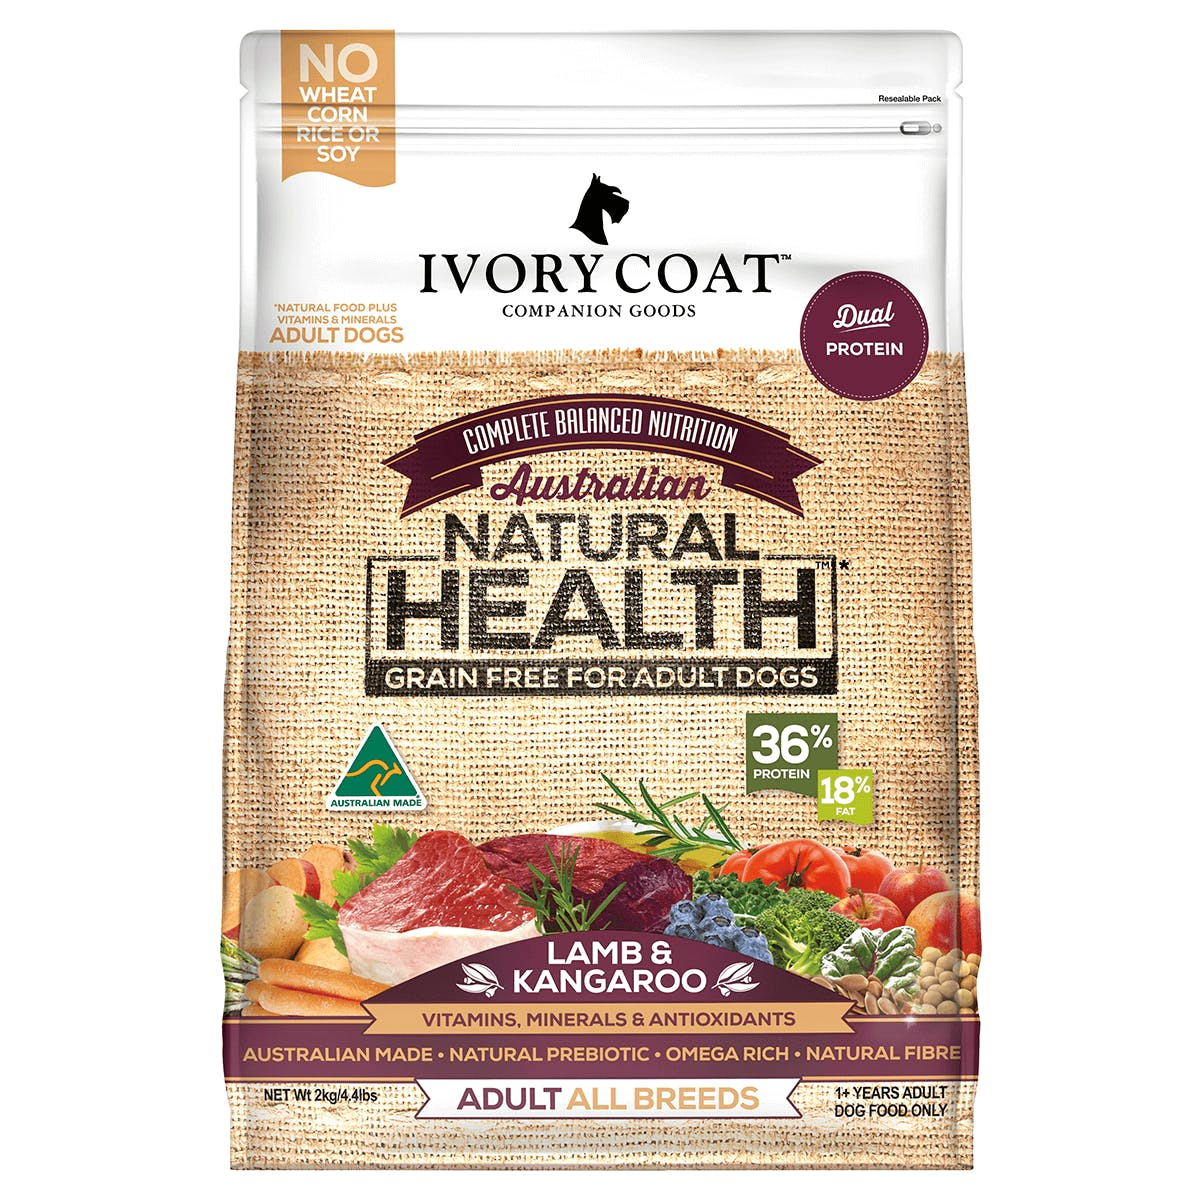 Ivory Coat | Lamb & Kangaroo | Dry dog food | Front of pack